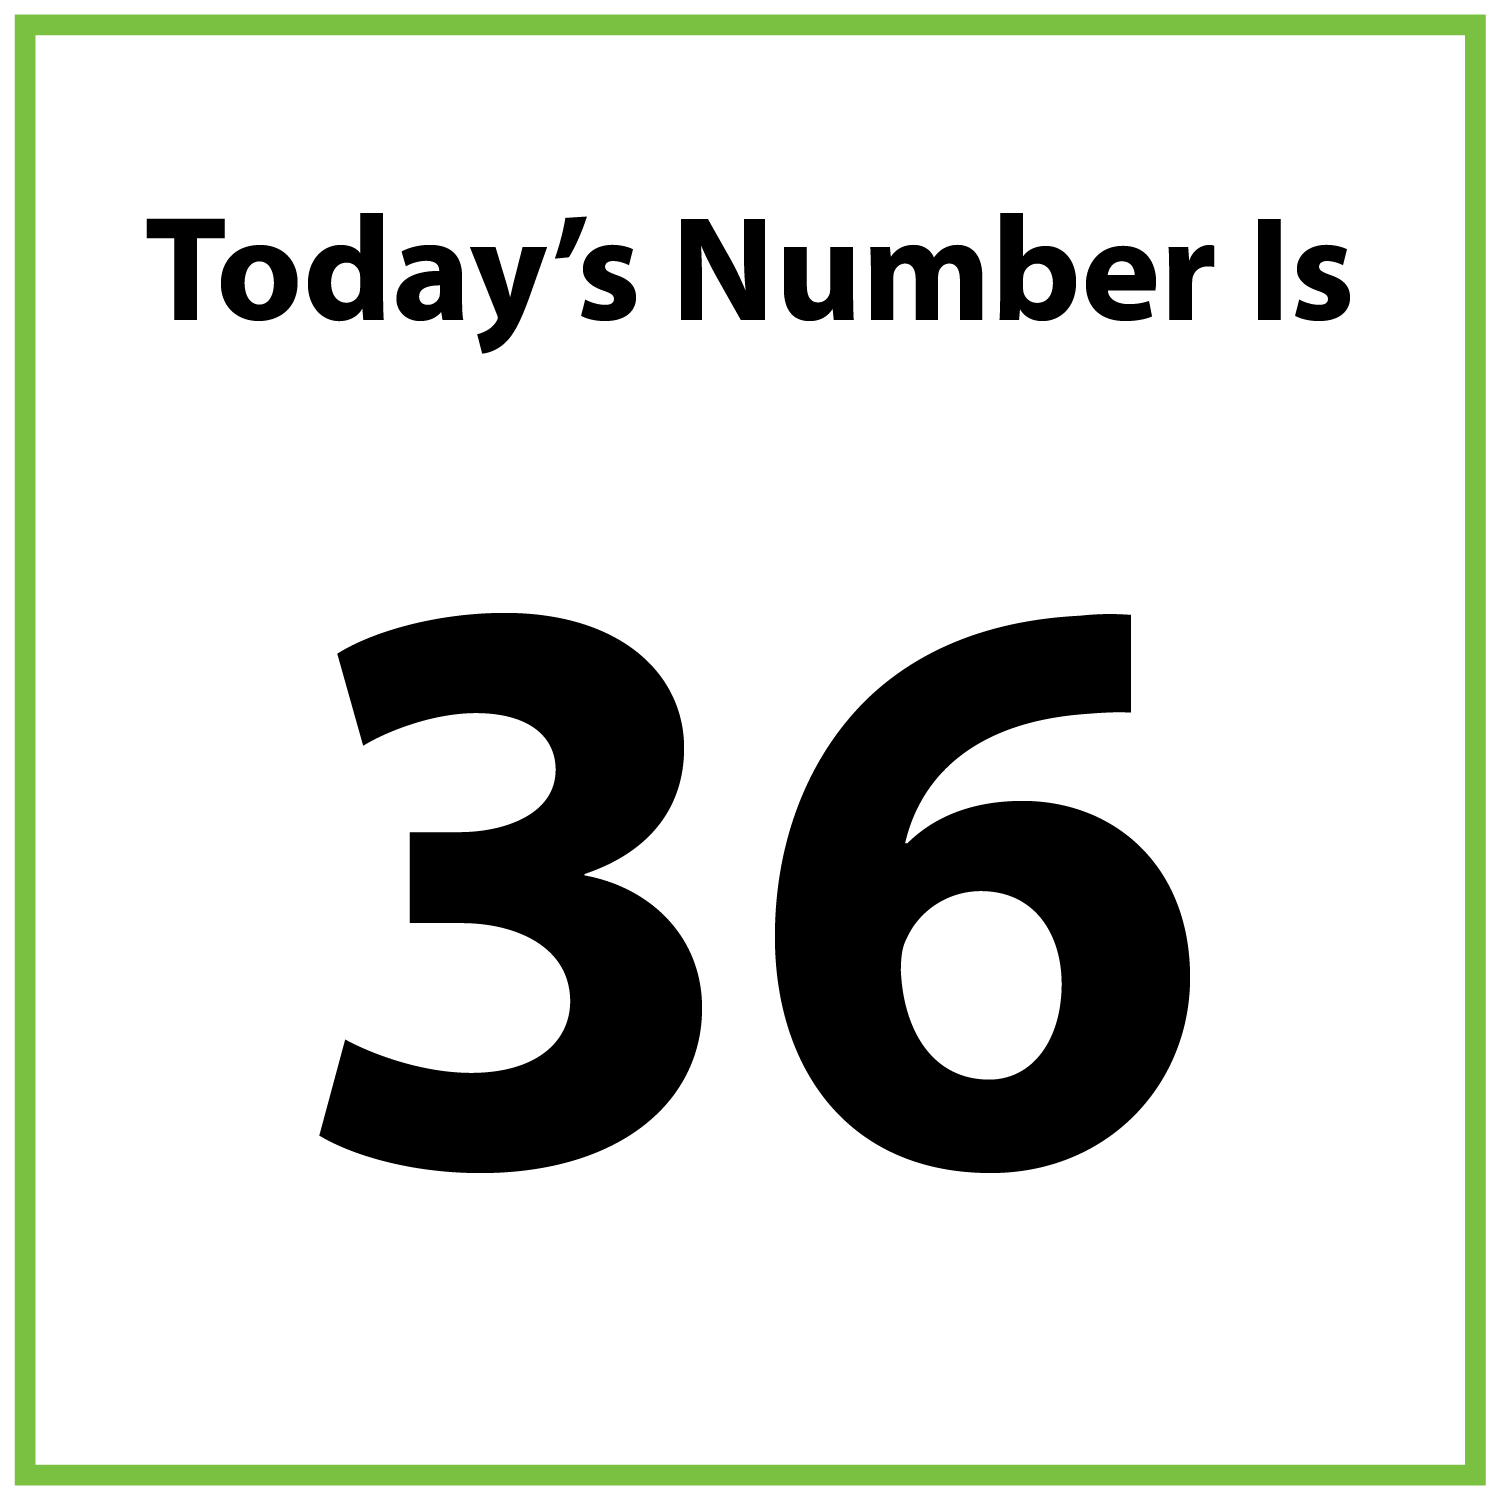 Today's number is 36.